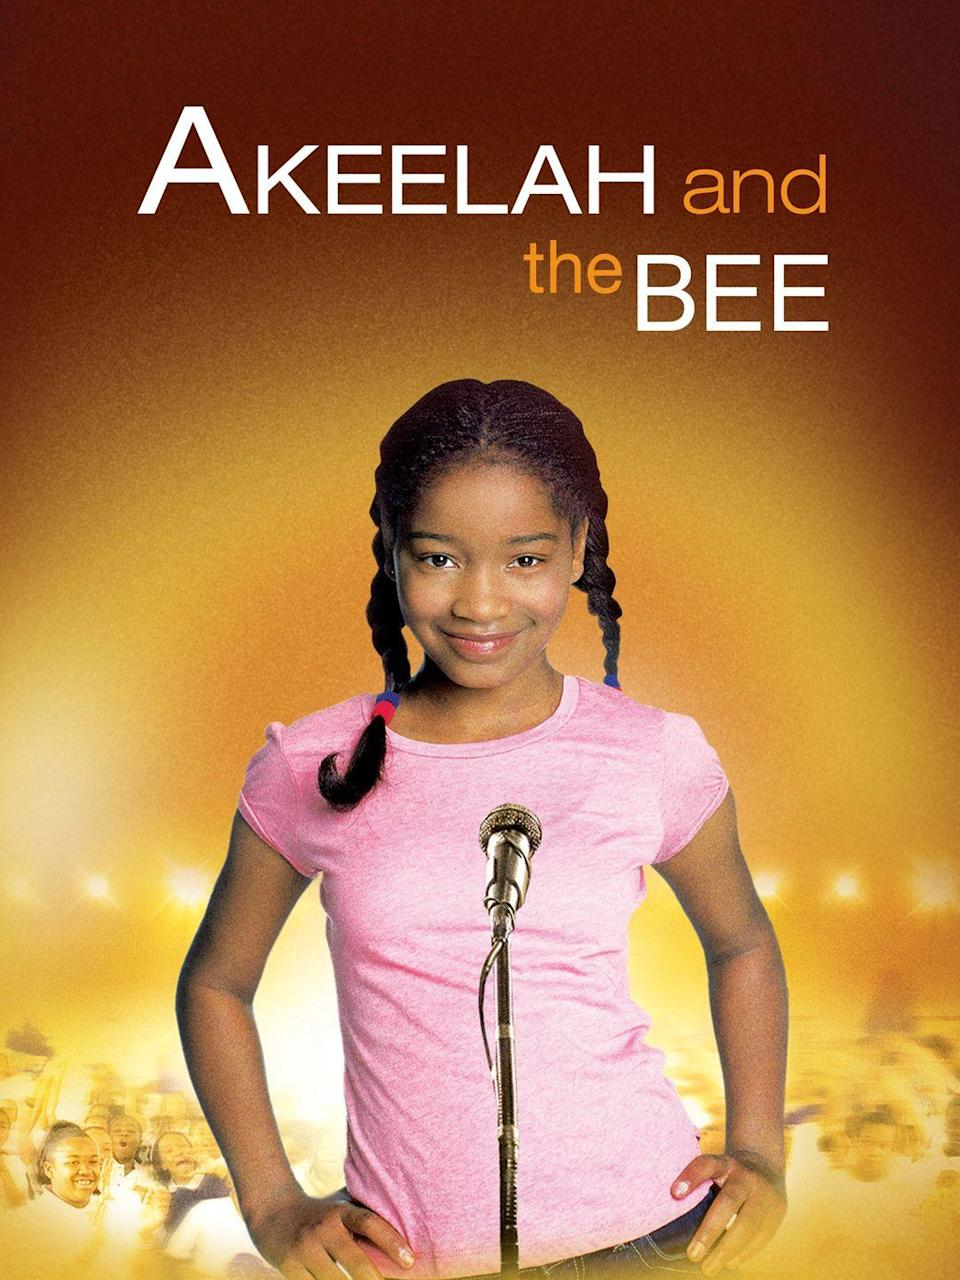 """<p><a class=""""link rapid-noclick-resp"""" href=""""https://www.amazon.com/Akeelah-Bee-Keke-Palmer/dp/B000IBQUO6?tag=syn-yahoo-20&ascsubtag=%5Bartid%7C10070.g.37101104%5Bsrc%7Cyahoo-us"""" rel=""""nofollow noopener"""" target=""""_blank"""" data-ylk=""""slk:STREAM NOW""""><strong>STREAM NOW</strong></a></p><p>An 11-year-old named Akeelah (Keke Palmer) embarks on a journey to win the National Spelling Bee by any means necessary. Thanks to the help of a devoted educator and the support of her South Los Angeles community, the talented student keeps her eyes on the prize.</p>"""